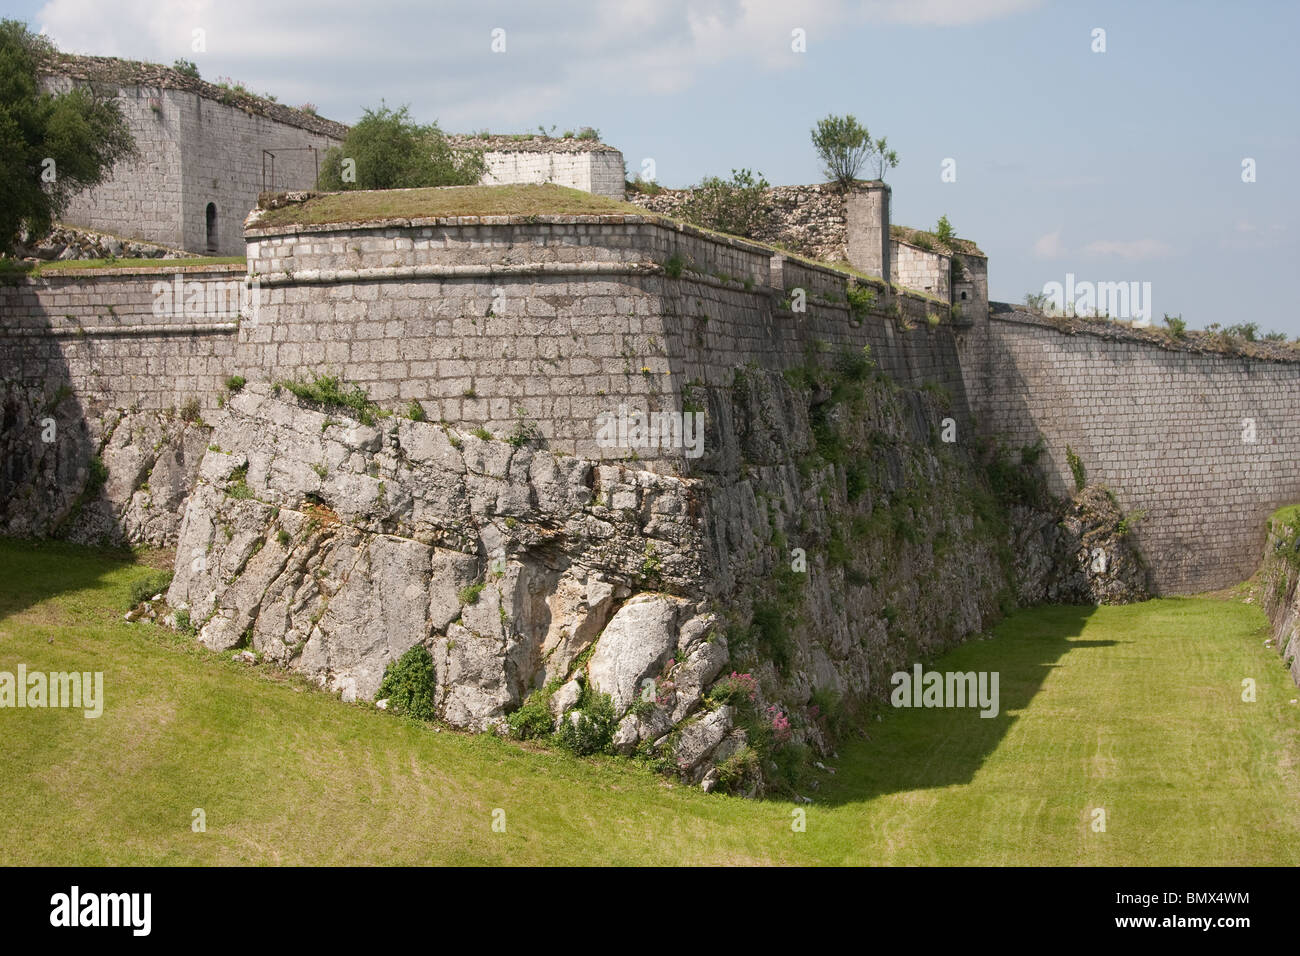 ancien regime fortifications stone citadel ruins - Stock Image